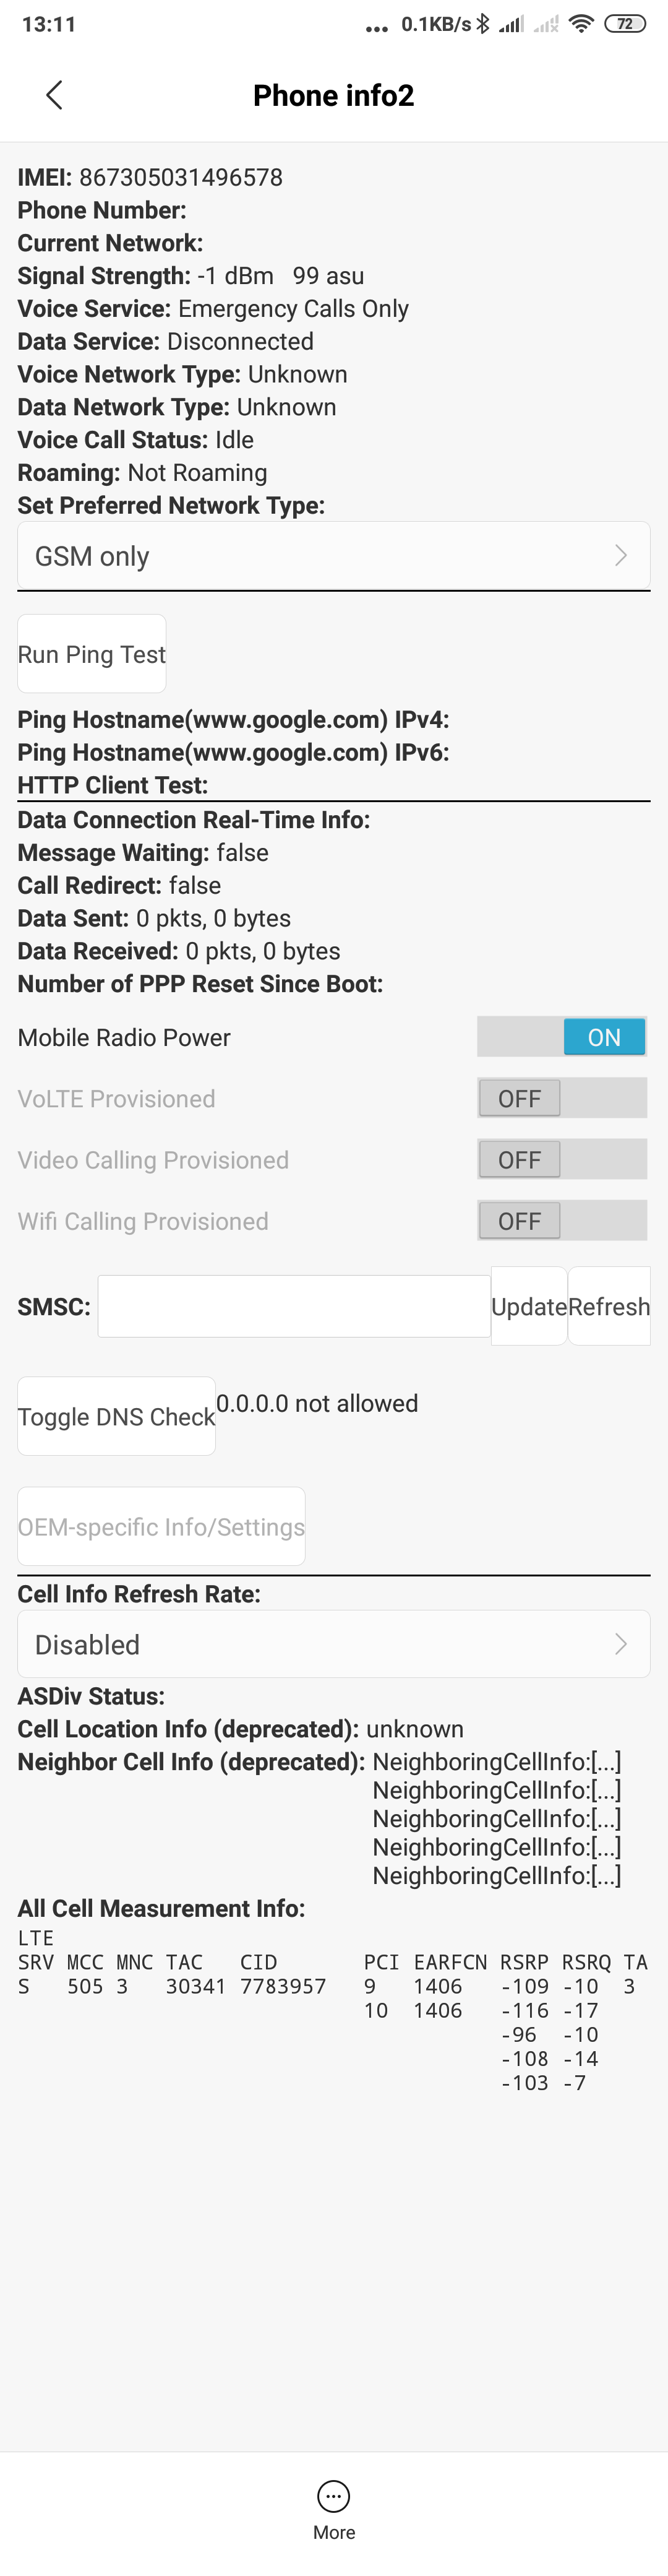 Resolved - Miui 10 2 2 0 SIM 2 can detect but no network